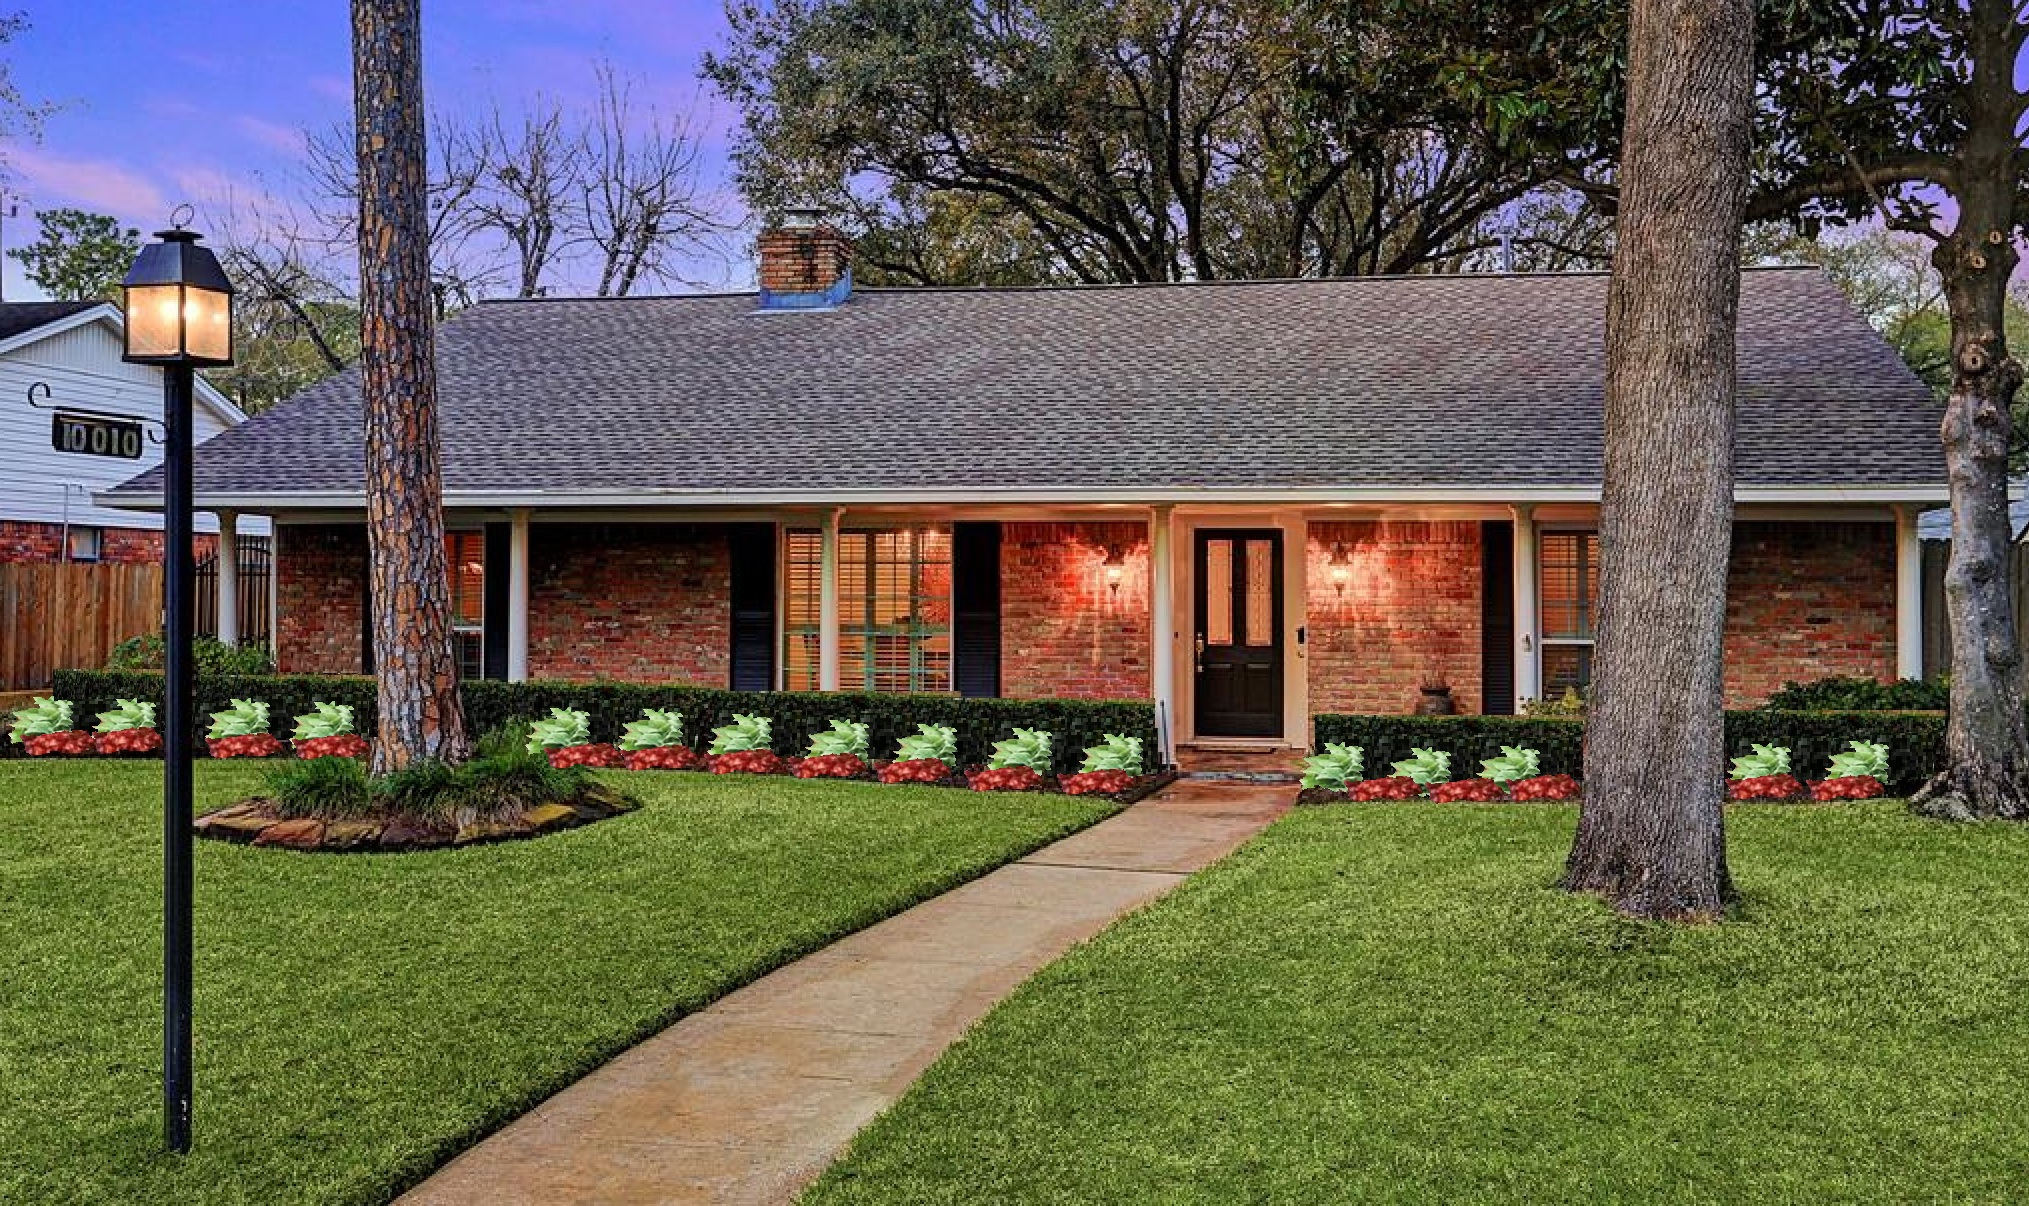 Landscaping ideas for Houston home *picture*-house-garden.jpg